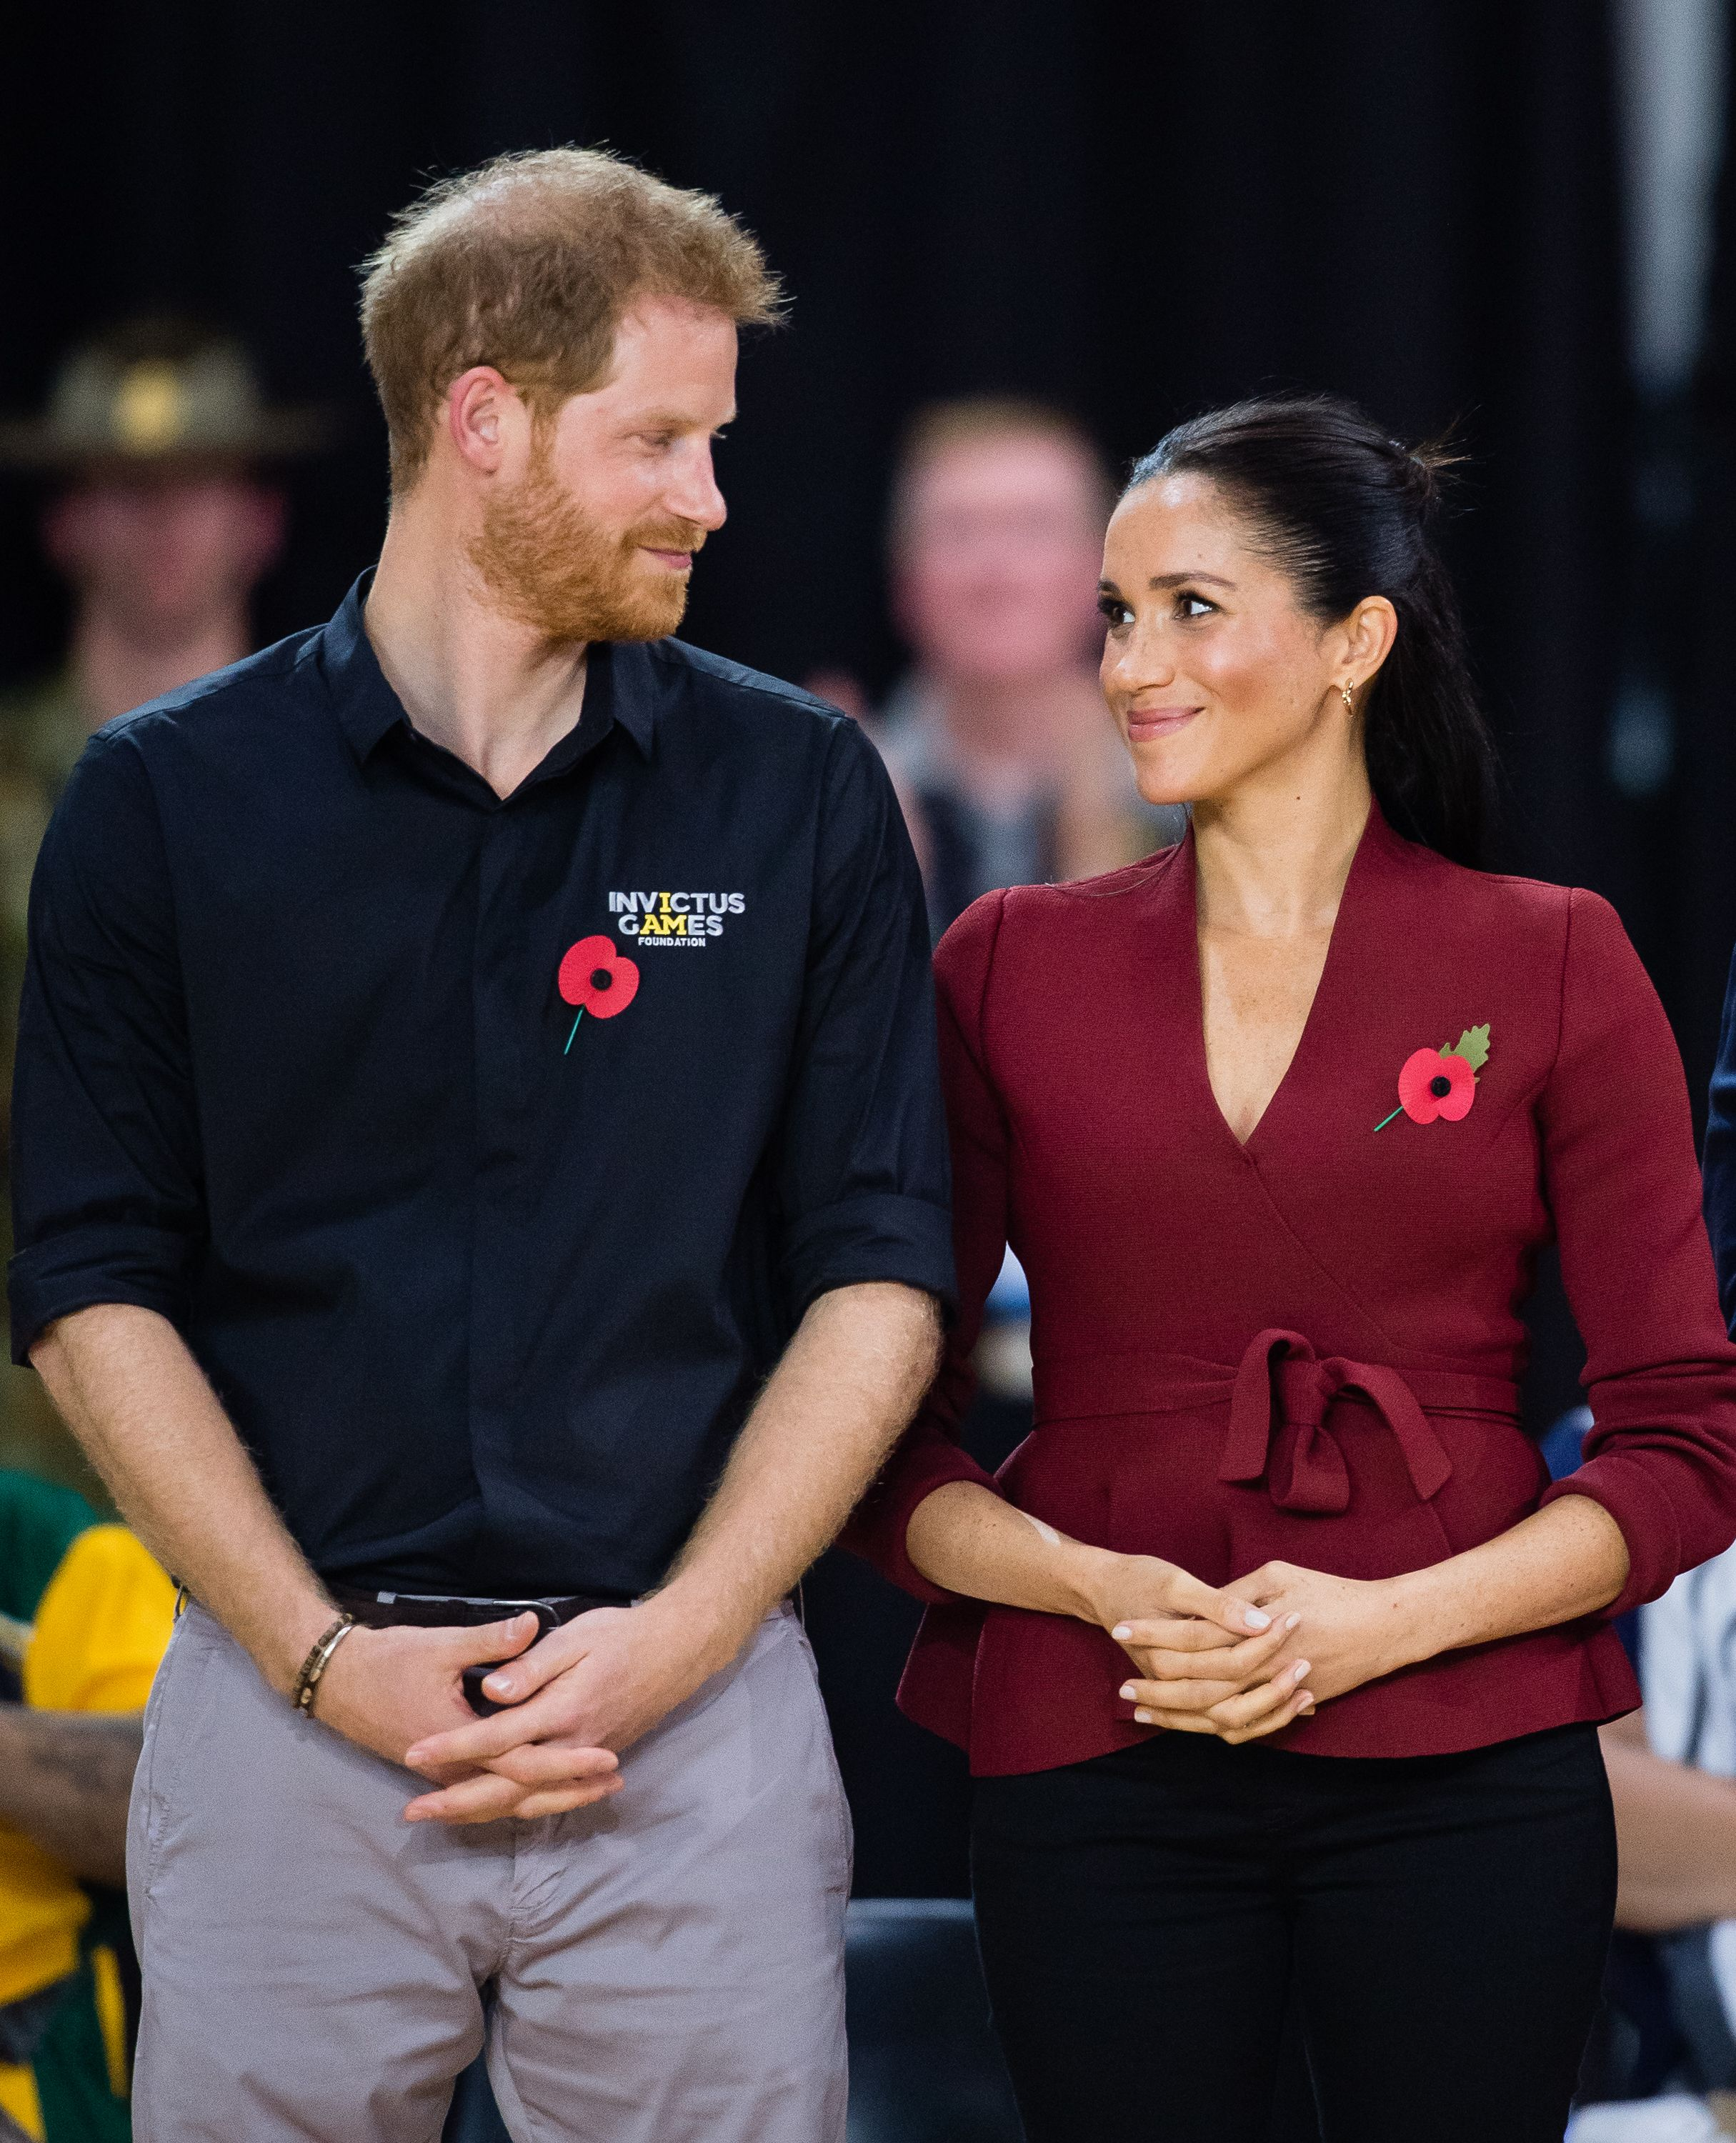 Meghan Markle Shares a Message for Prince Harry's 35th Birthday on Instagram